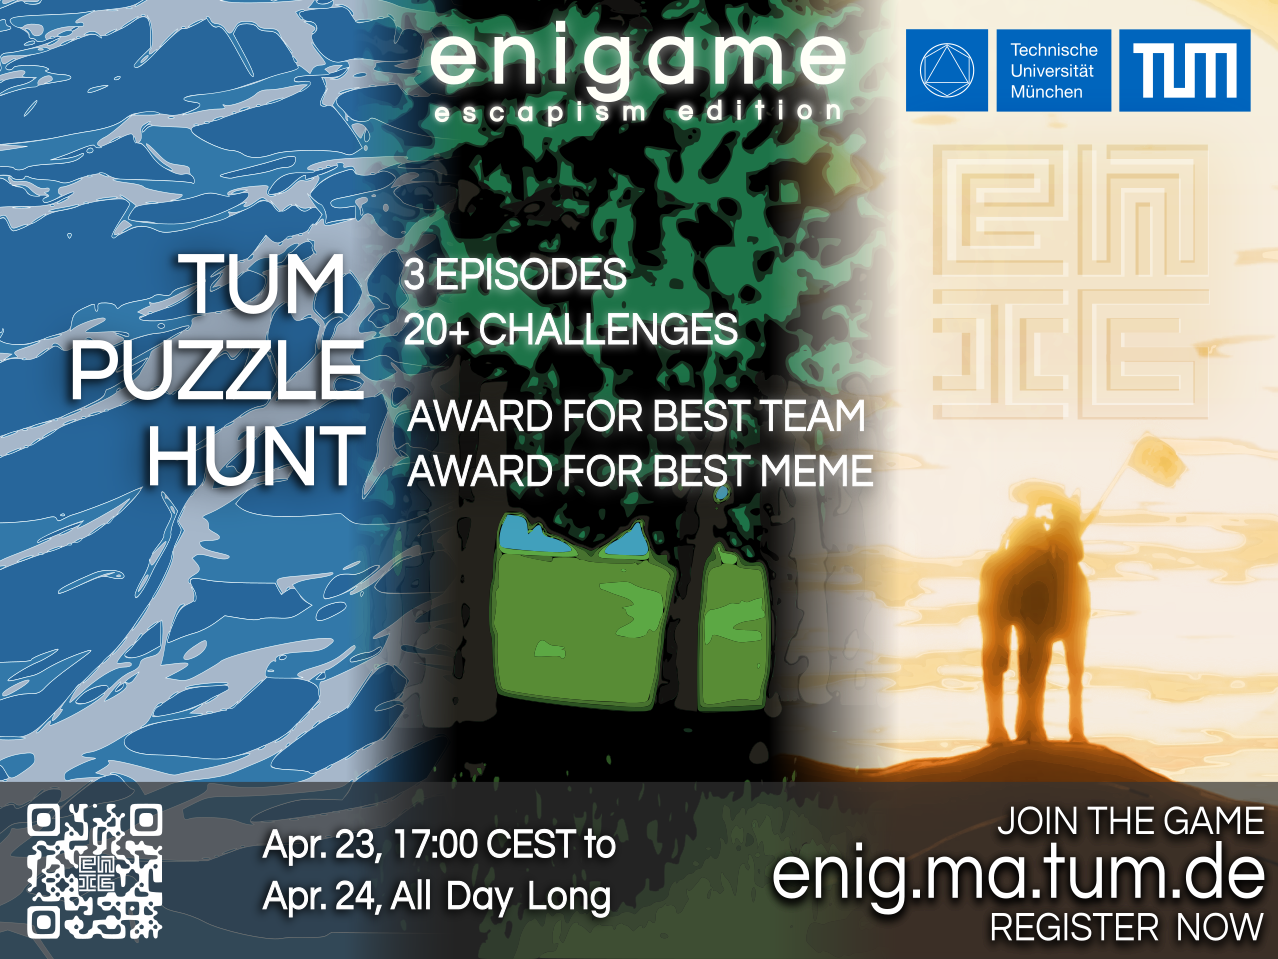 enigame - escapism edition: Flyer